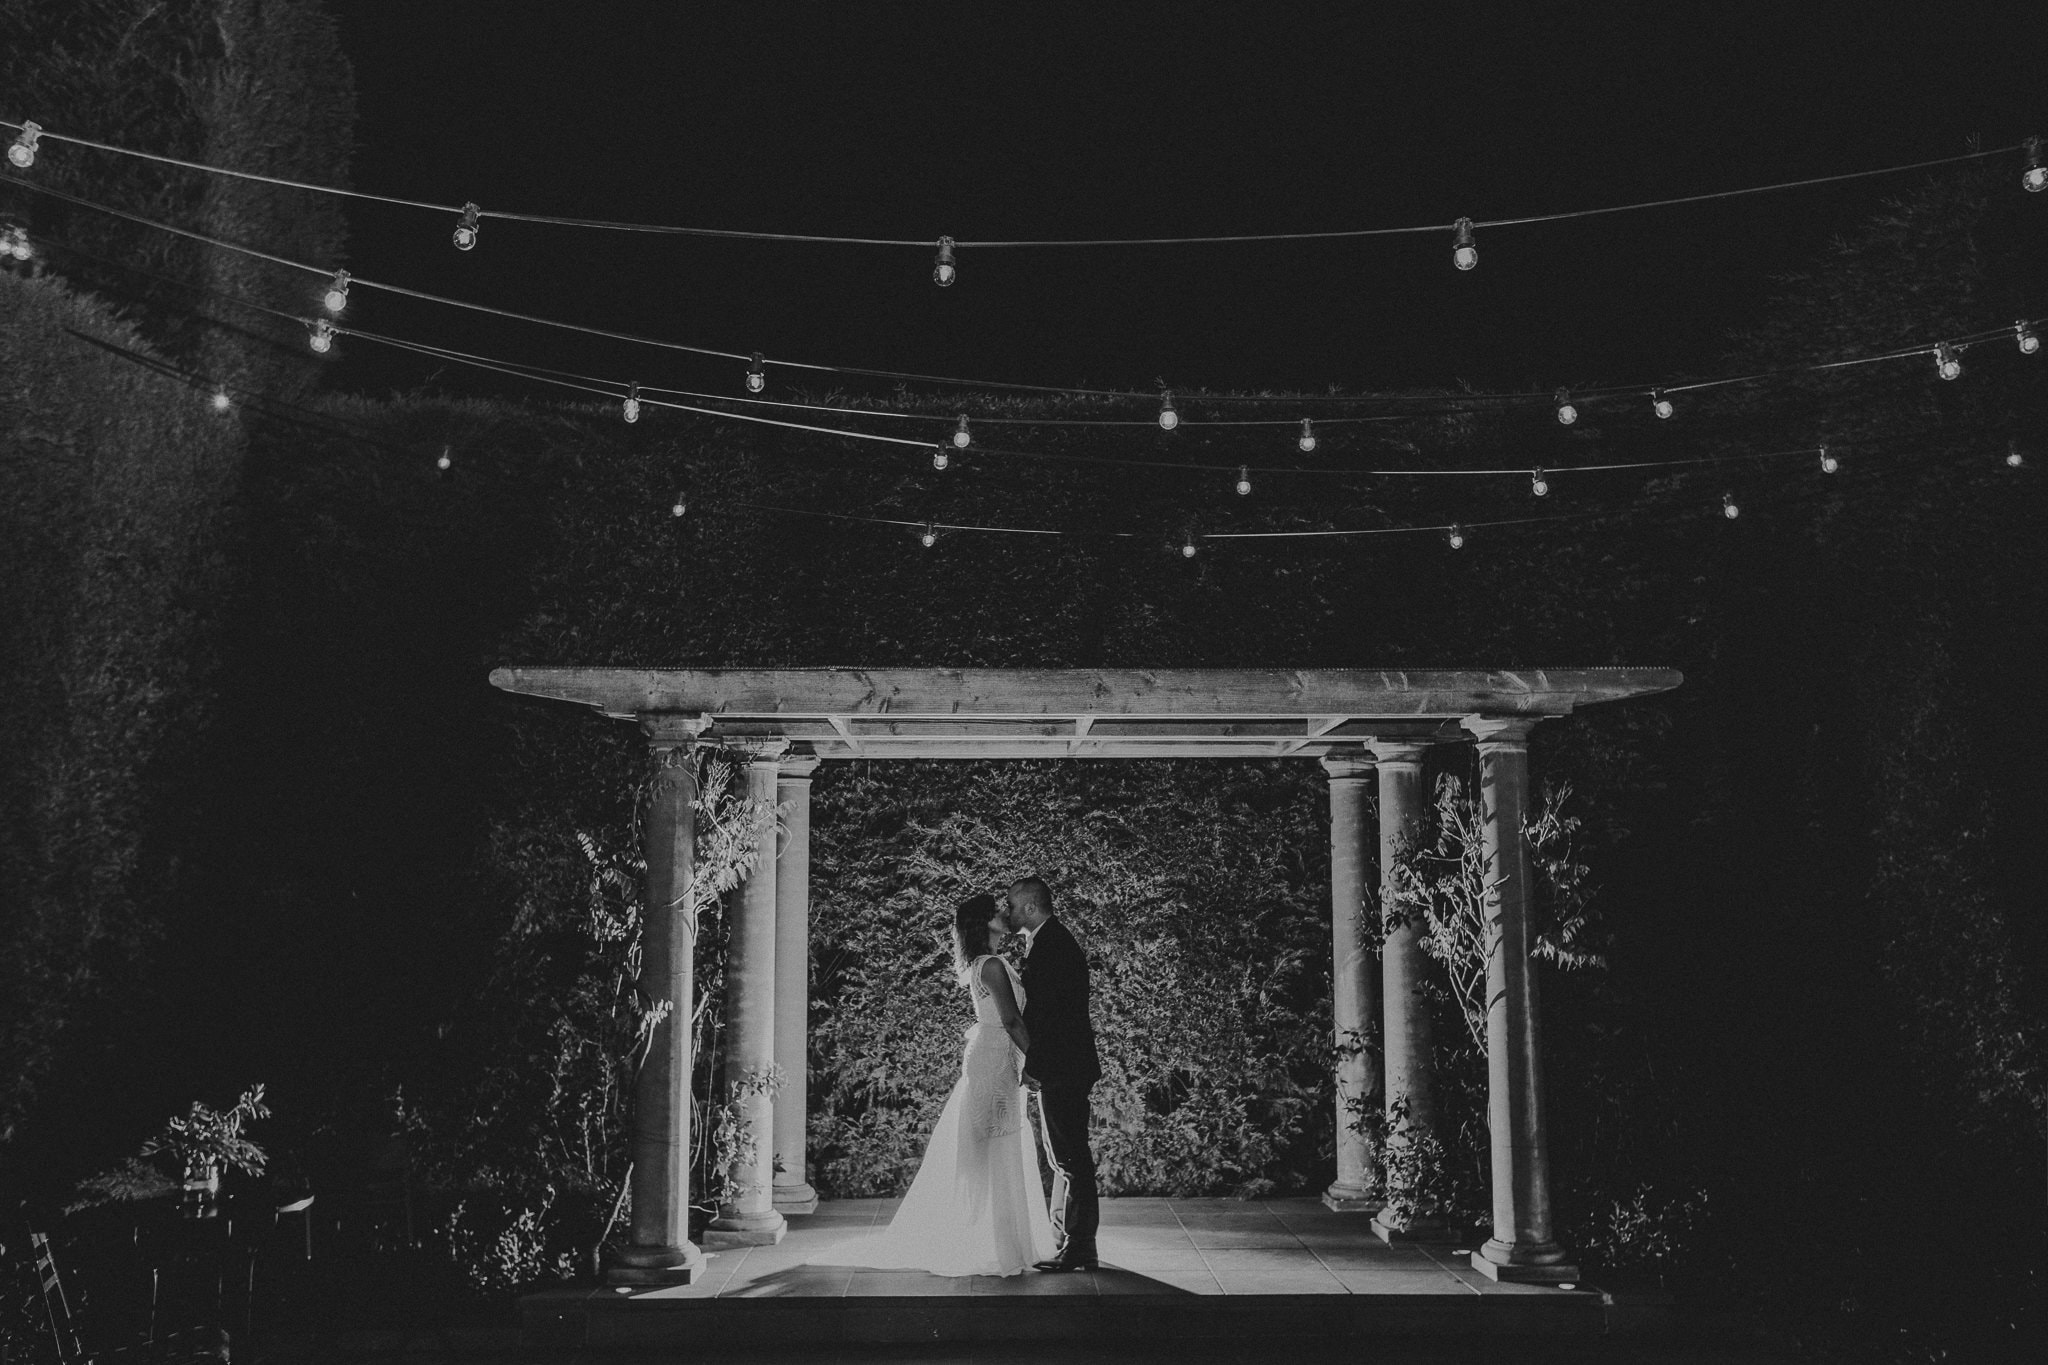 Nighttime wedding photography in Melbourne